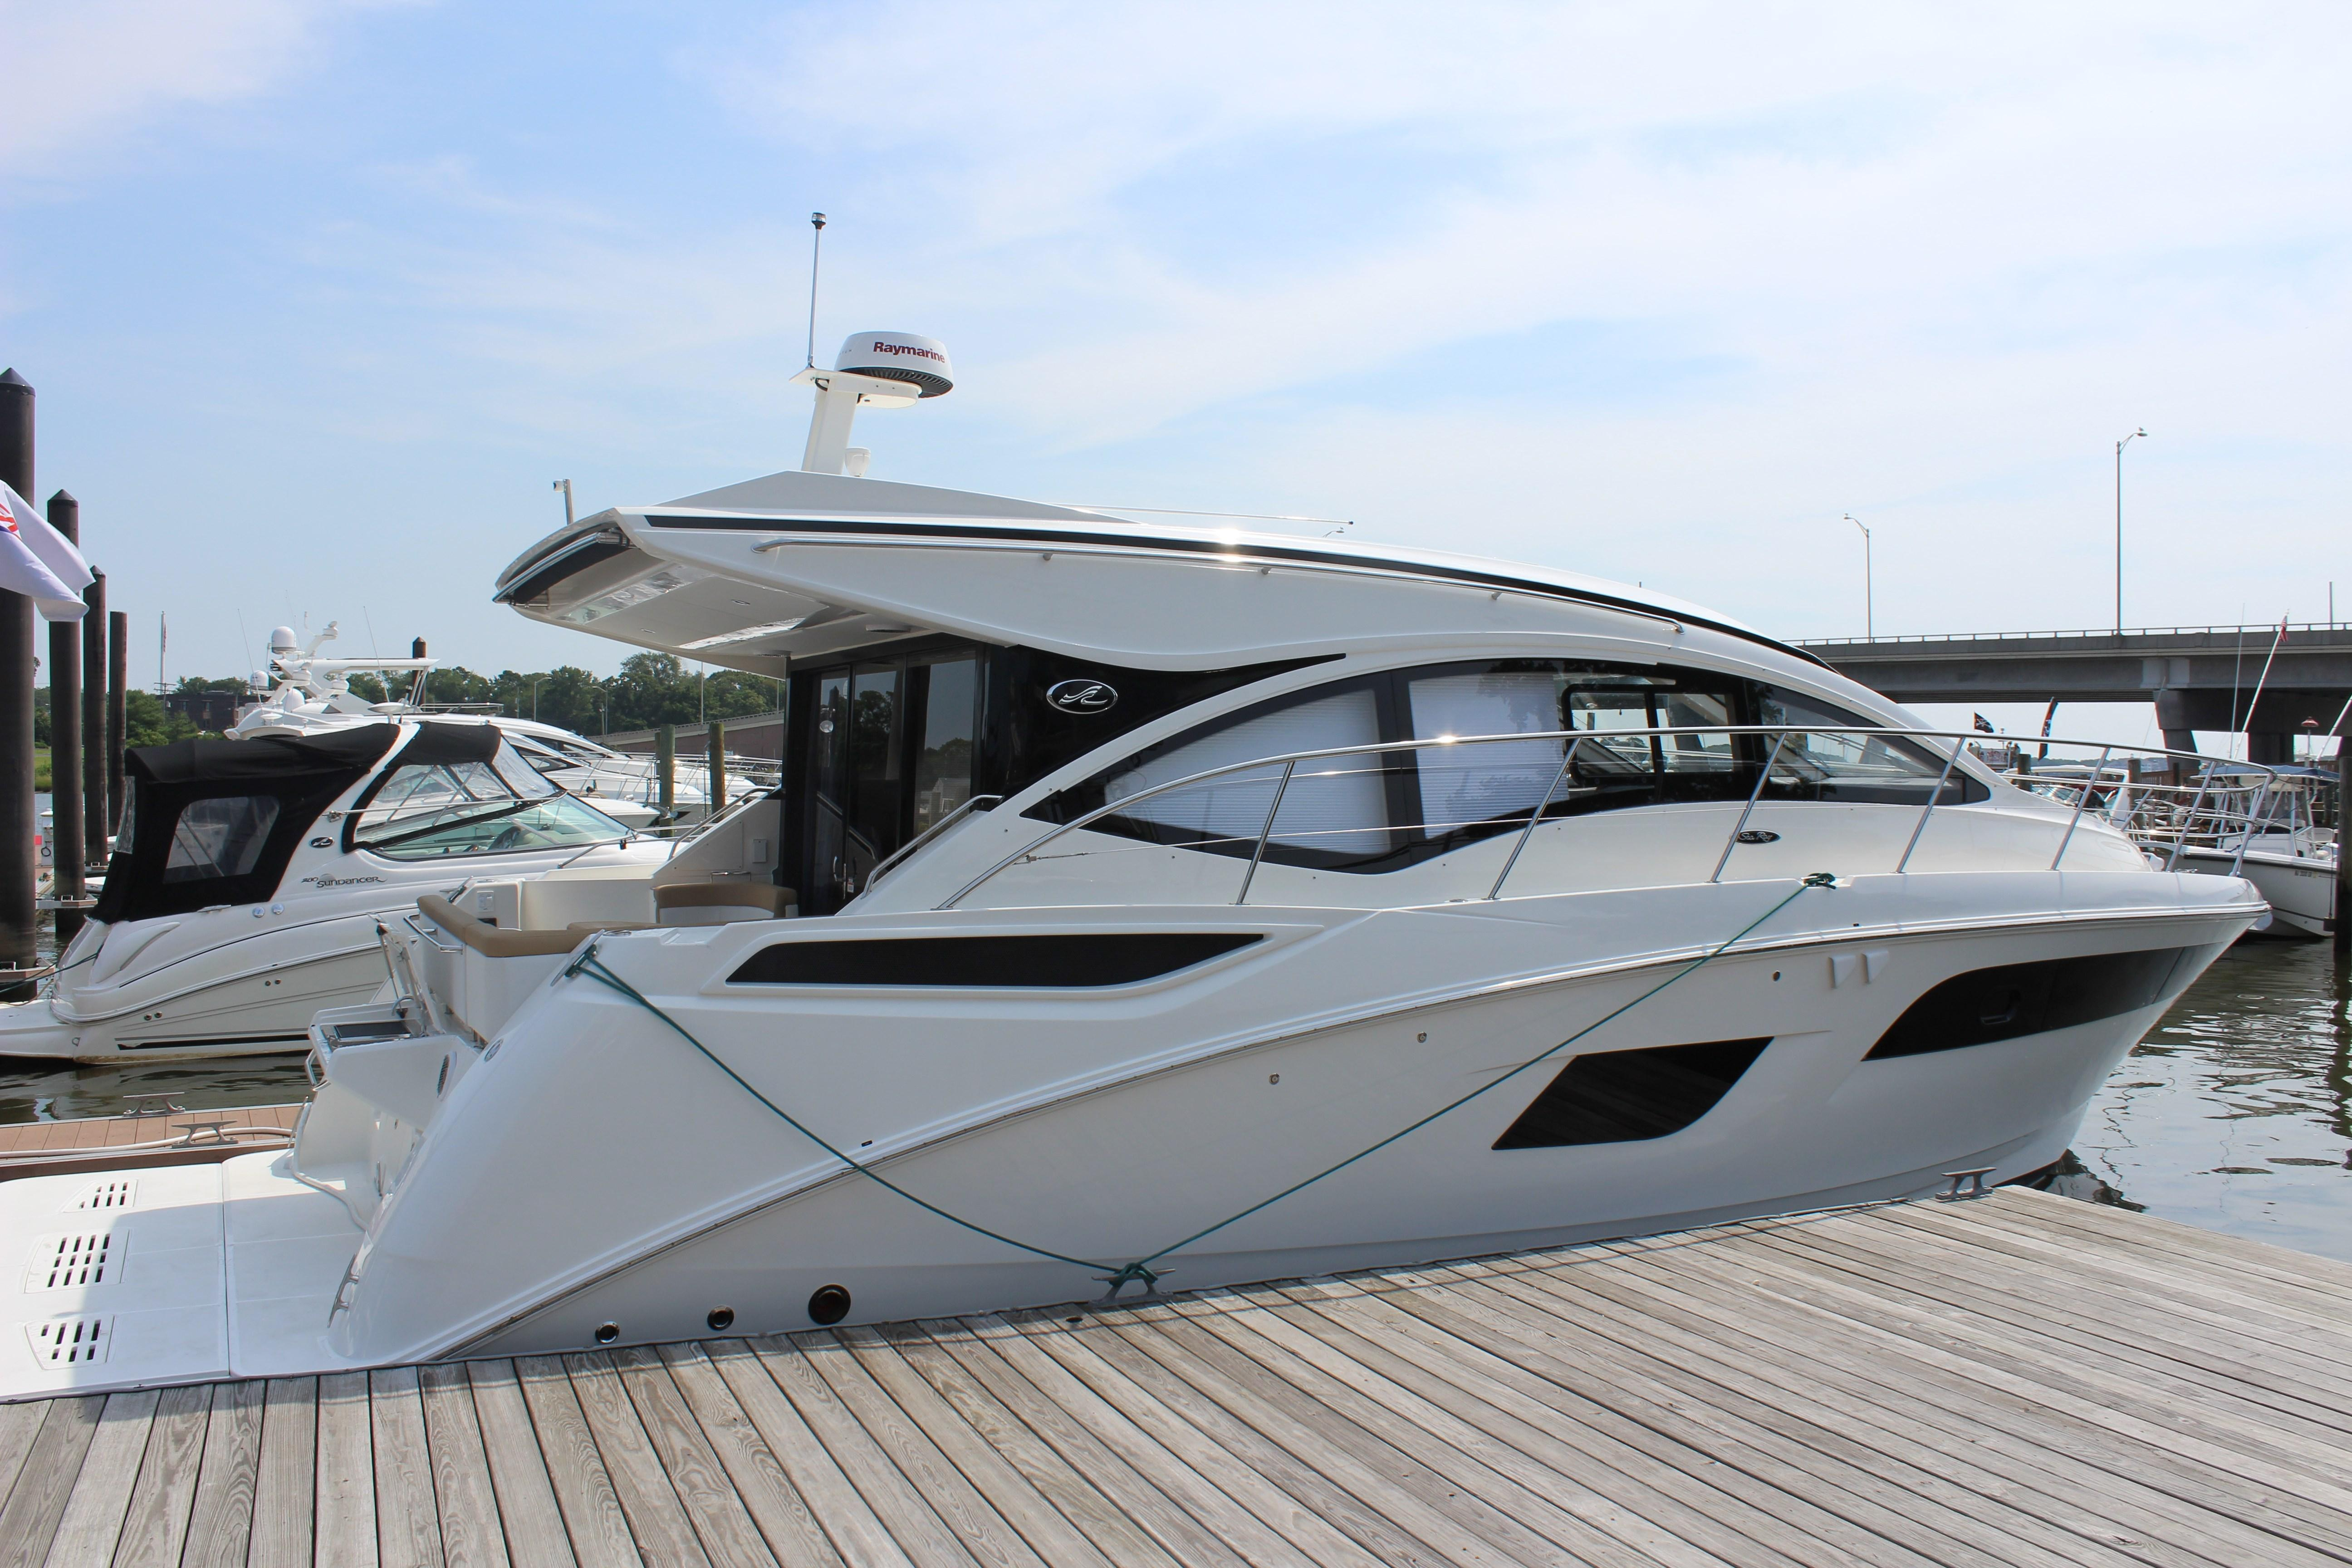 Awesome Maxum Boat Wiring Diagram Ideas Best Image Diagram Wiring Diagram Symbols 96 Crownline Wiring Diagram & 96 Crownline Wiring Diagram - Wiring Diagram